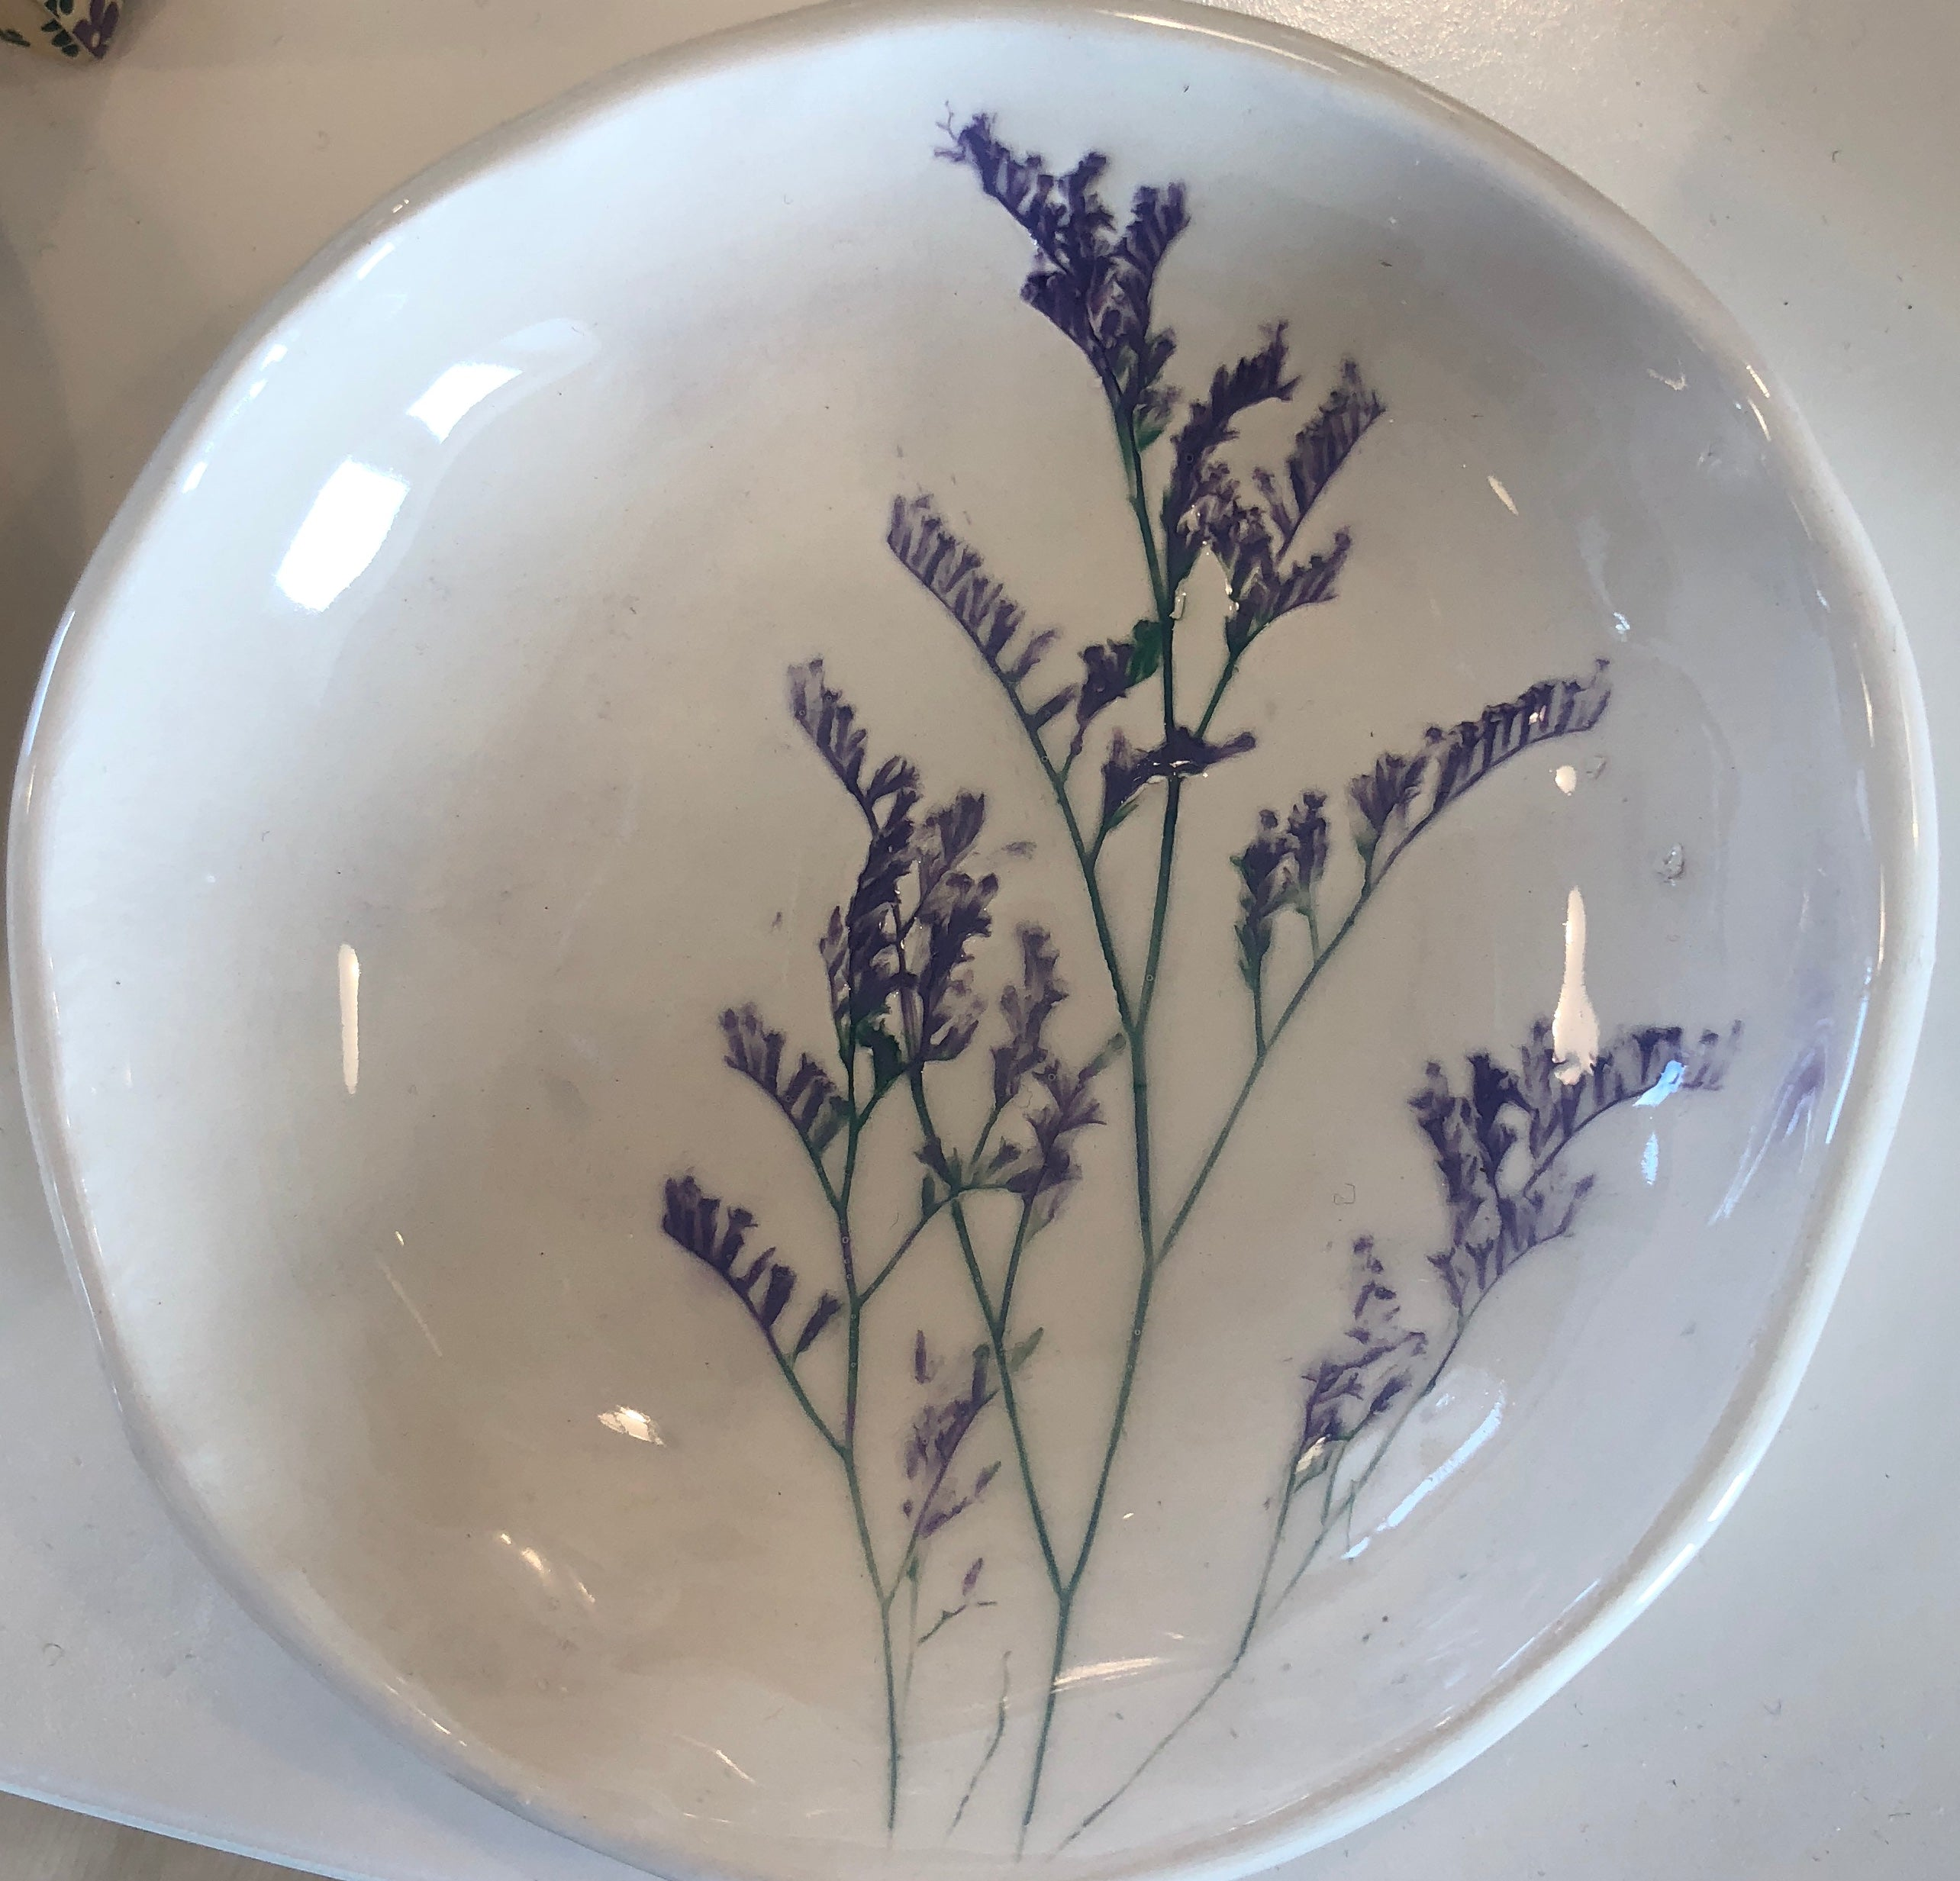 Small Wildflower Ceramic Bowls - handmade in Ireland